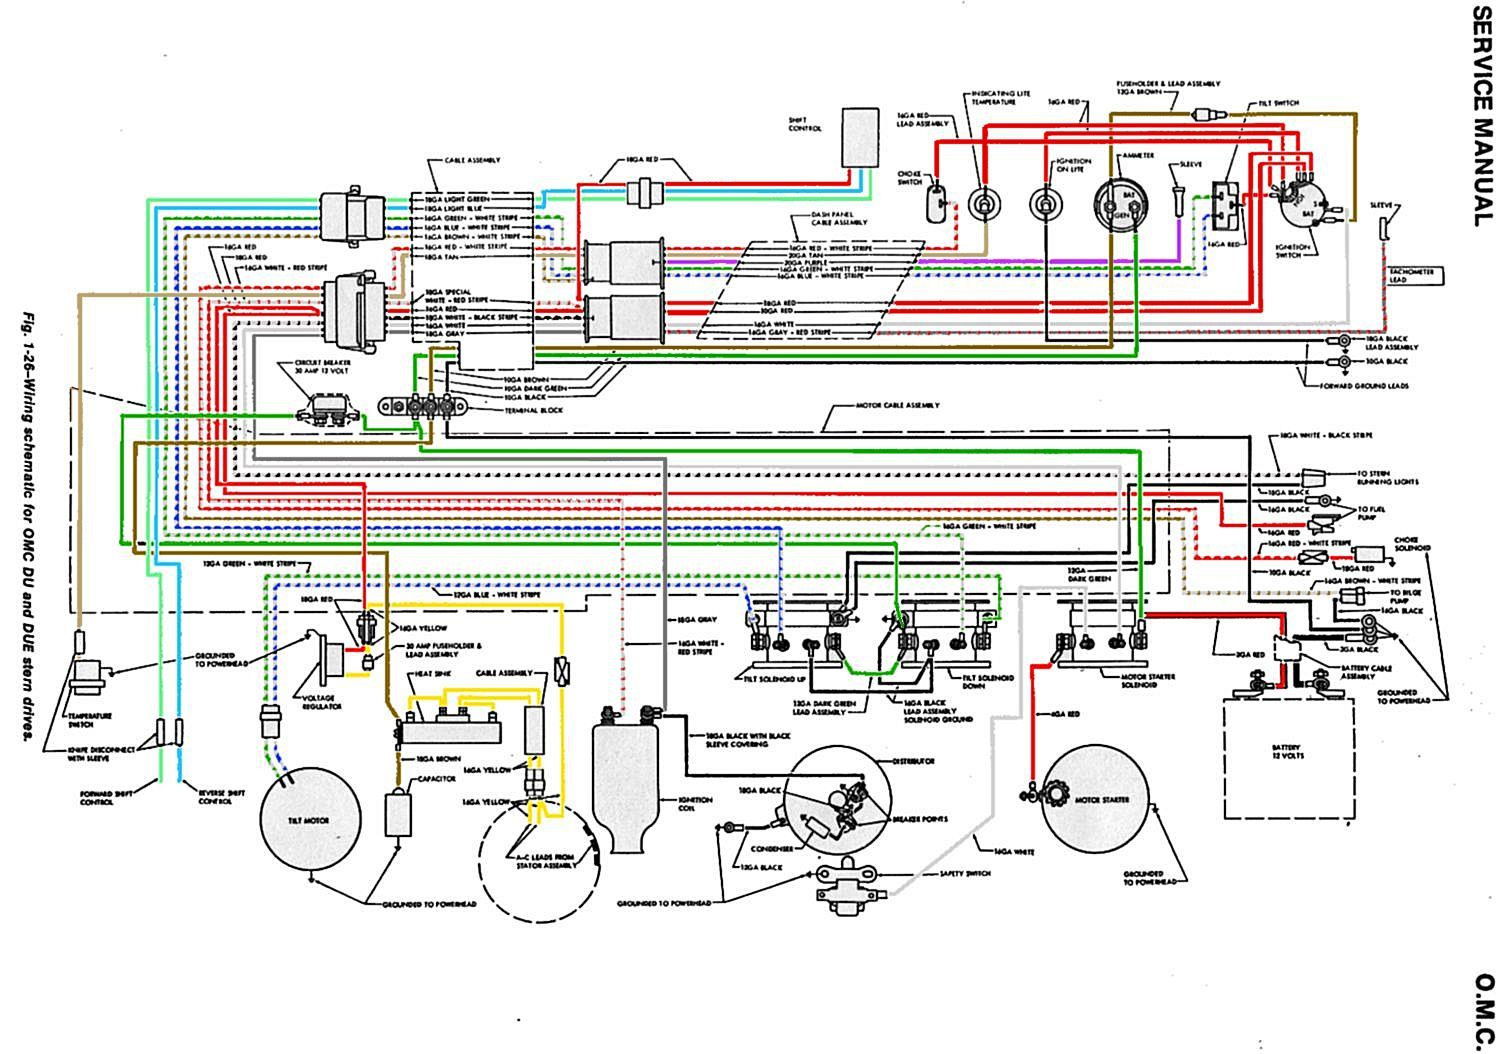 Omc Boat Technical Info Wiring Diagrams Click On Image To Enlarge